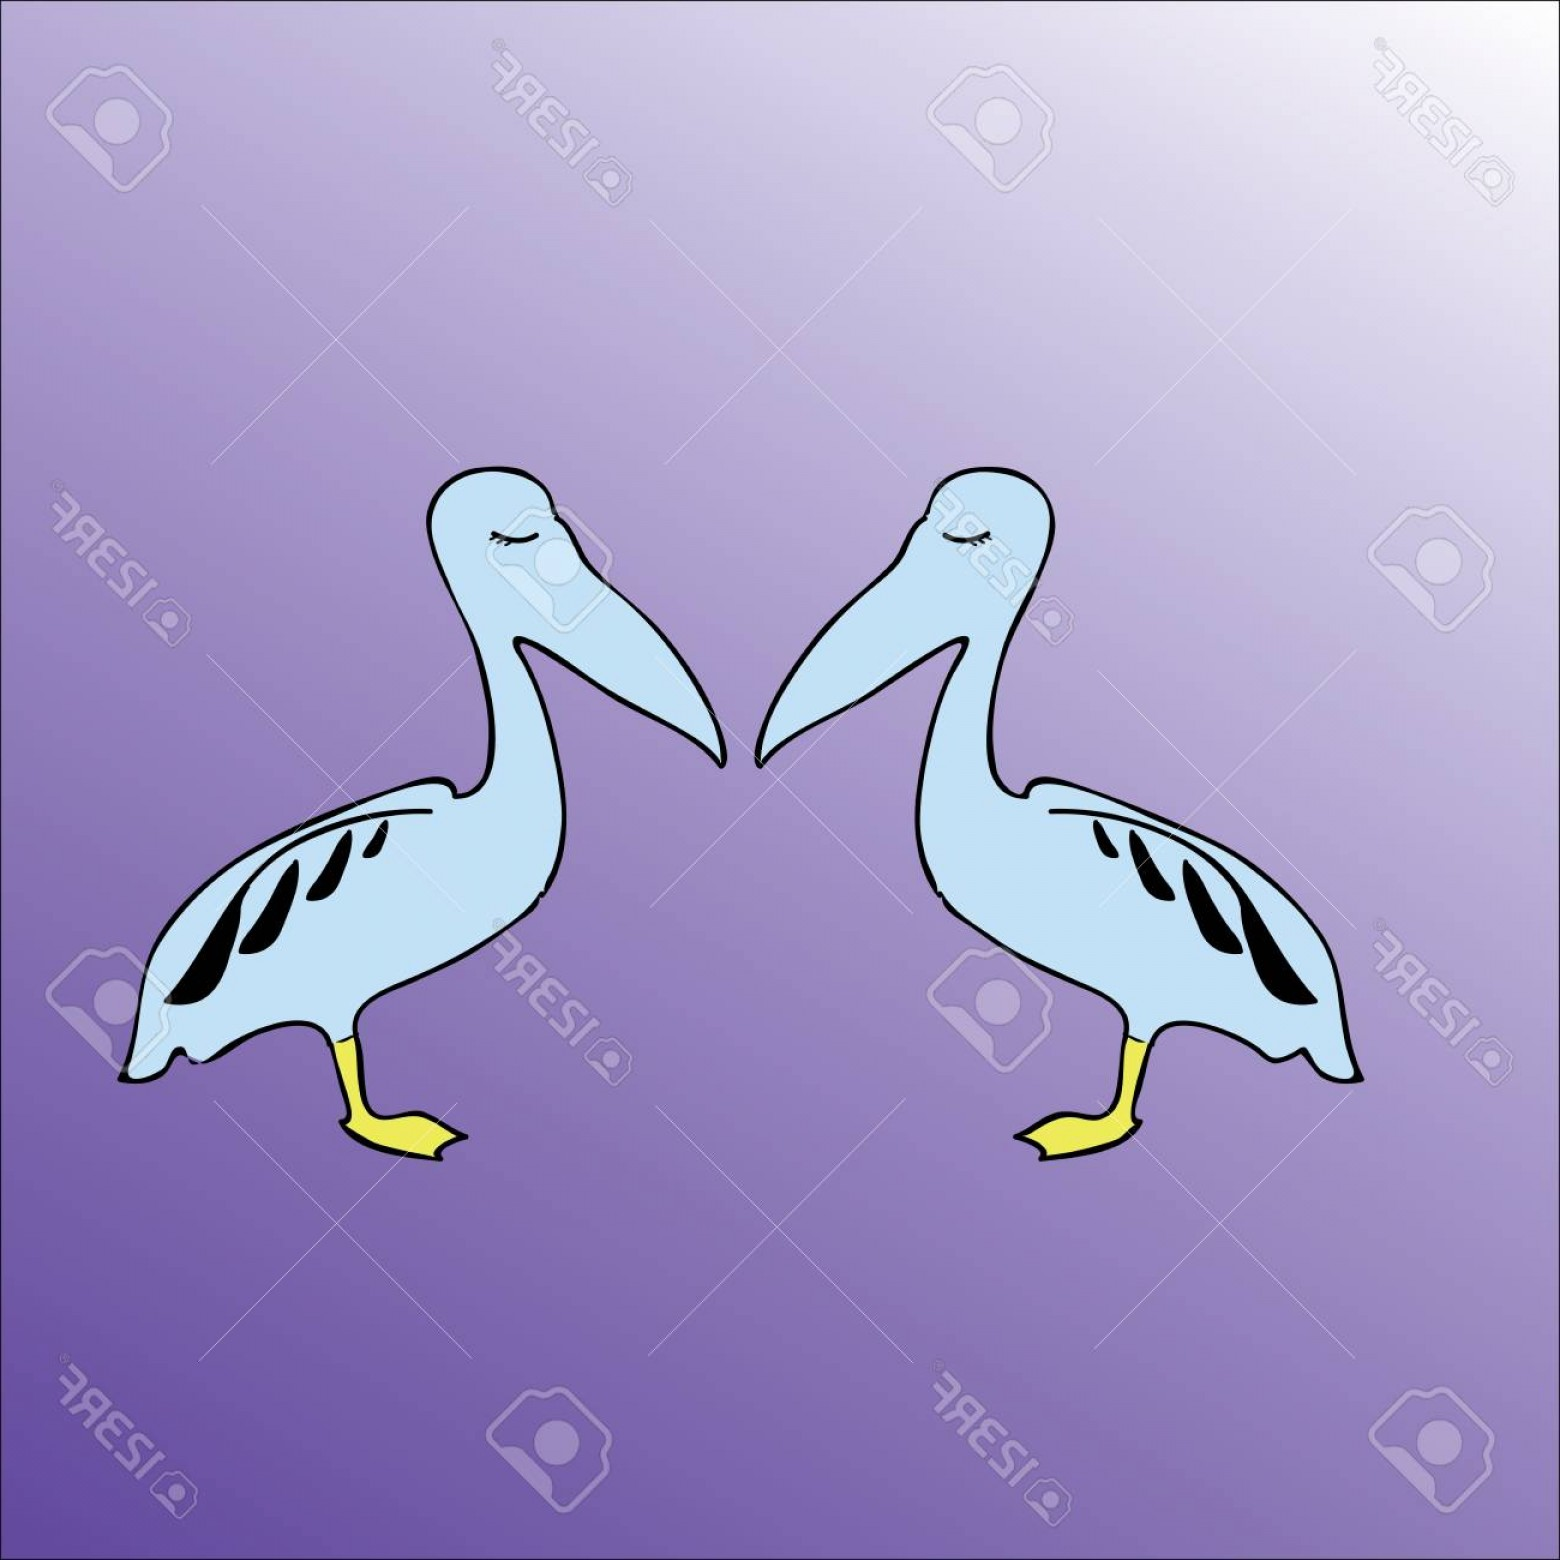 Pelican Vector Wings: Photostock Vector Two Blue Pelicans With Patterned Wings In Profile Standing On One Foot Opposite Each Other With Clos